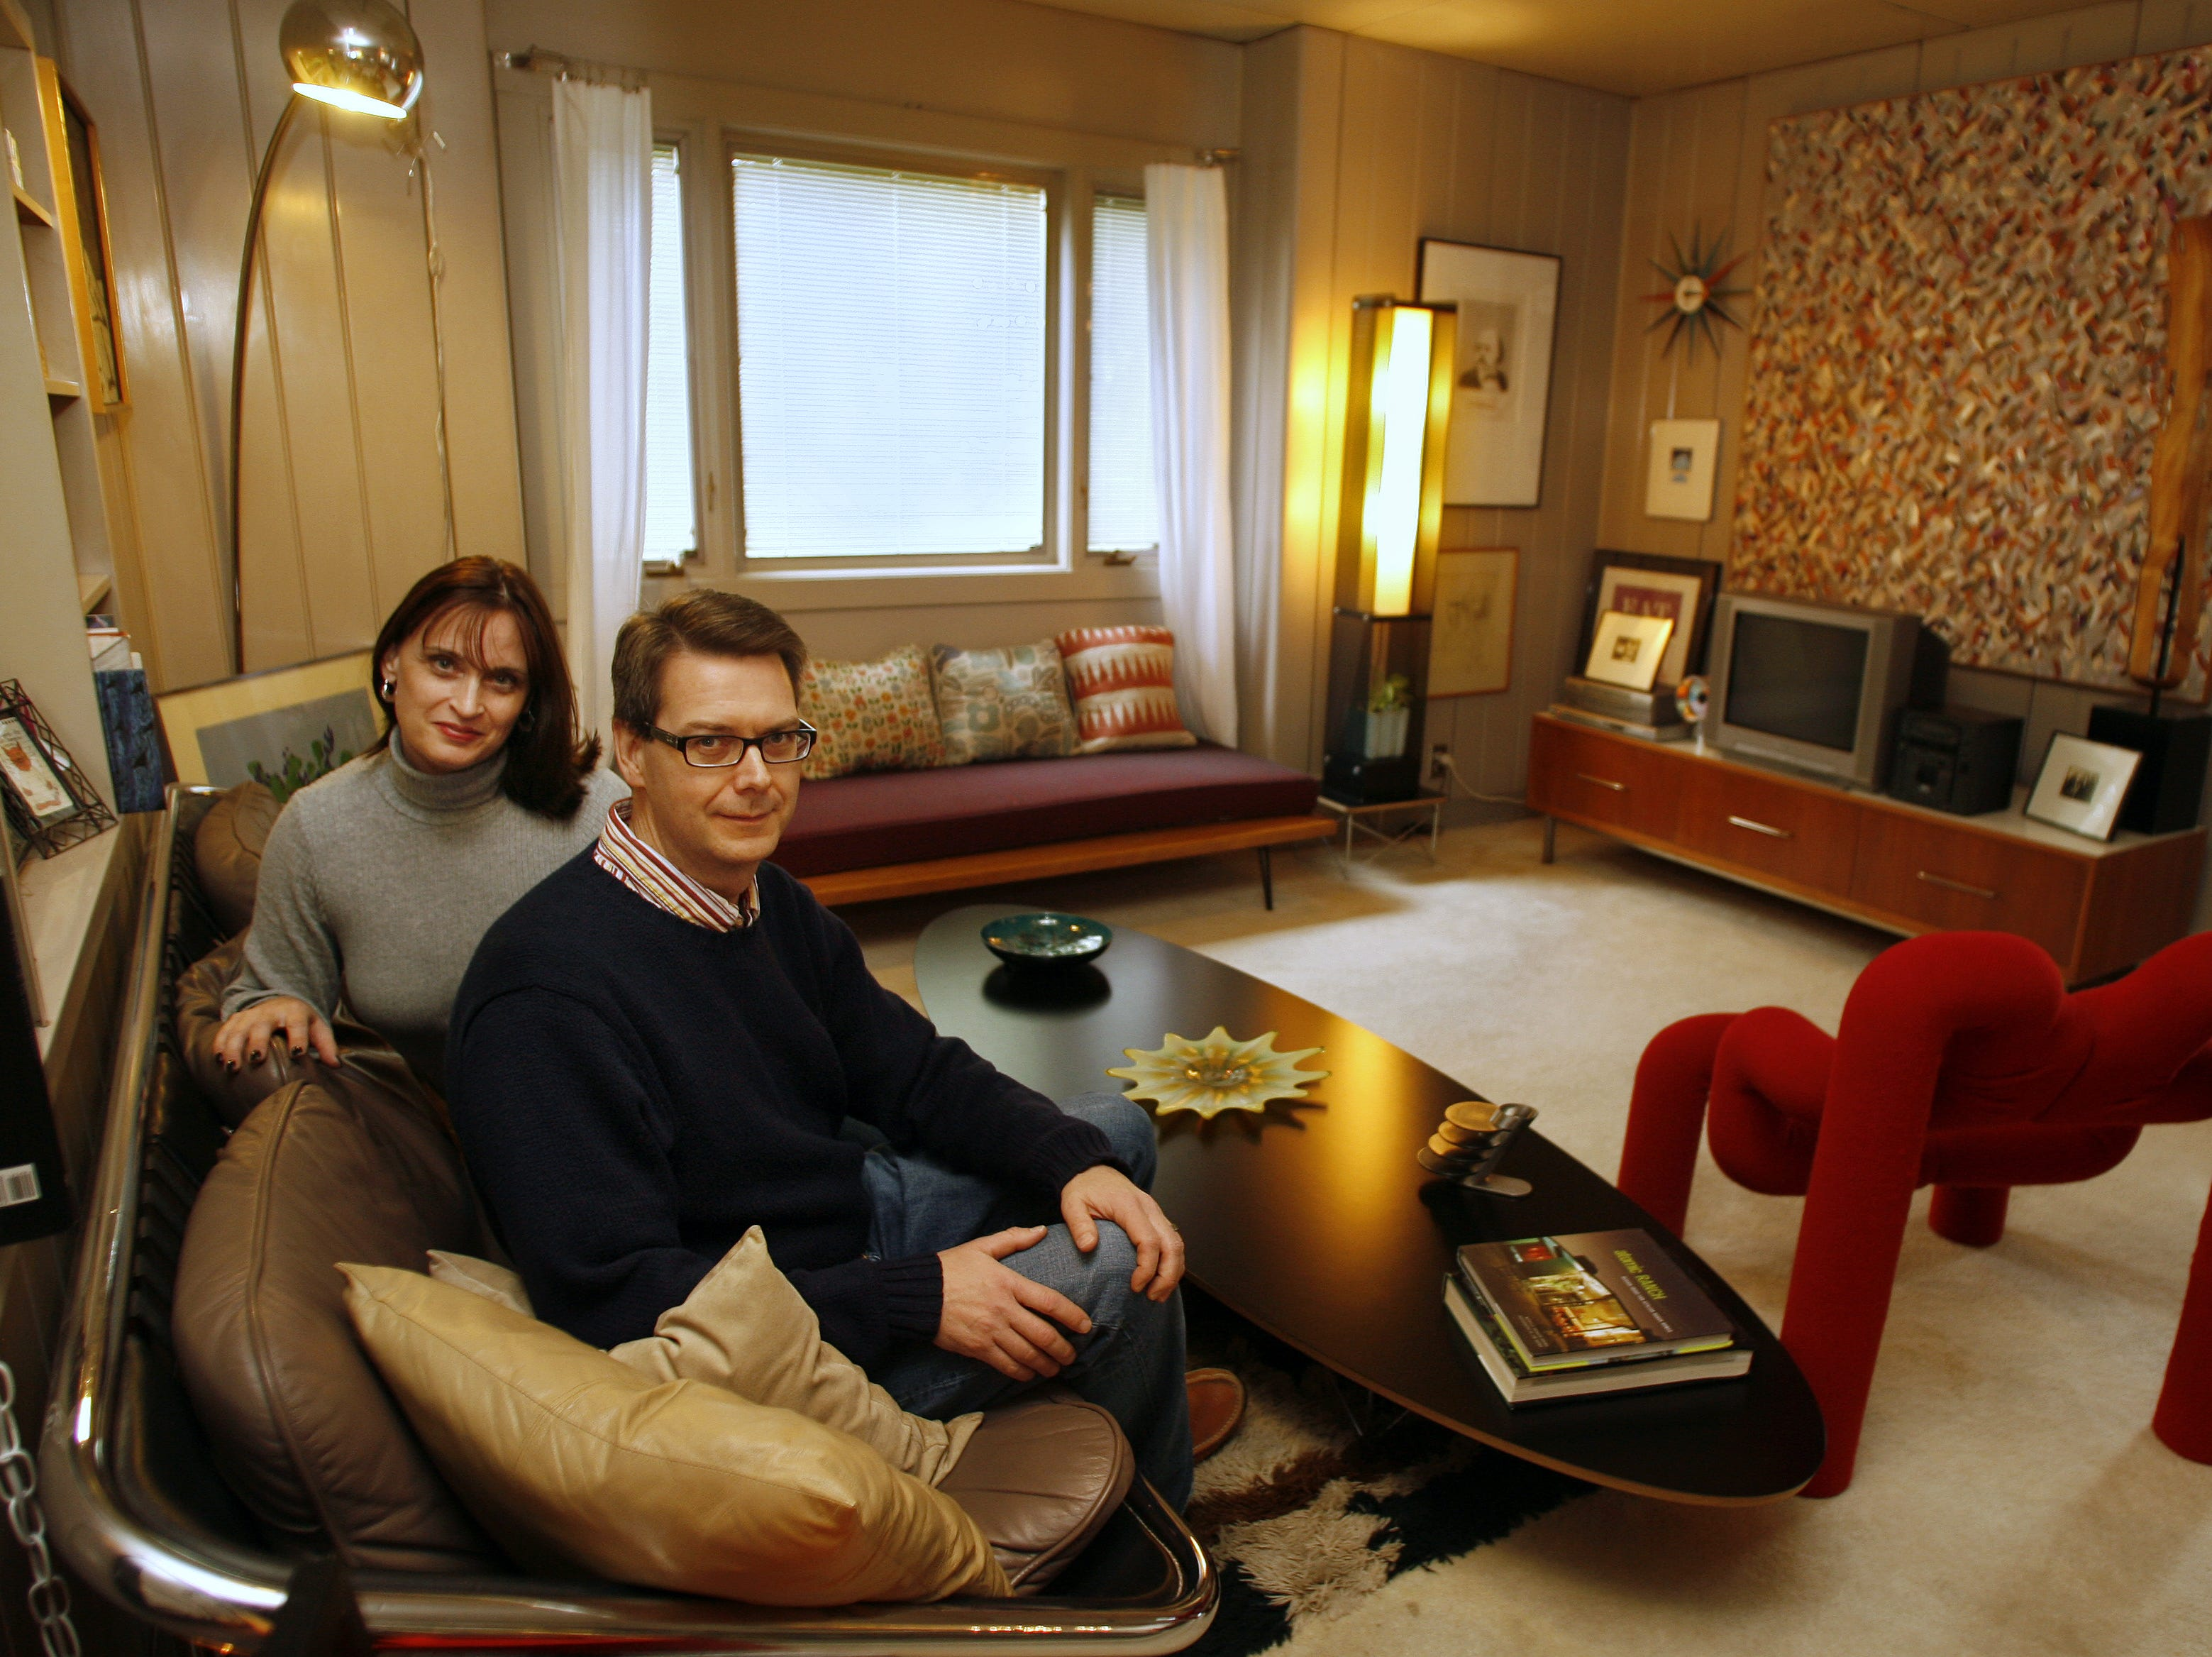 Stephanie O'Neal and Michael O'Neal in their Lustron home in Des Moines in September 2006.